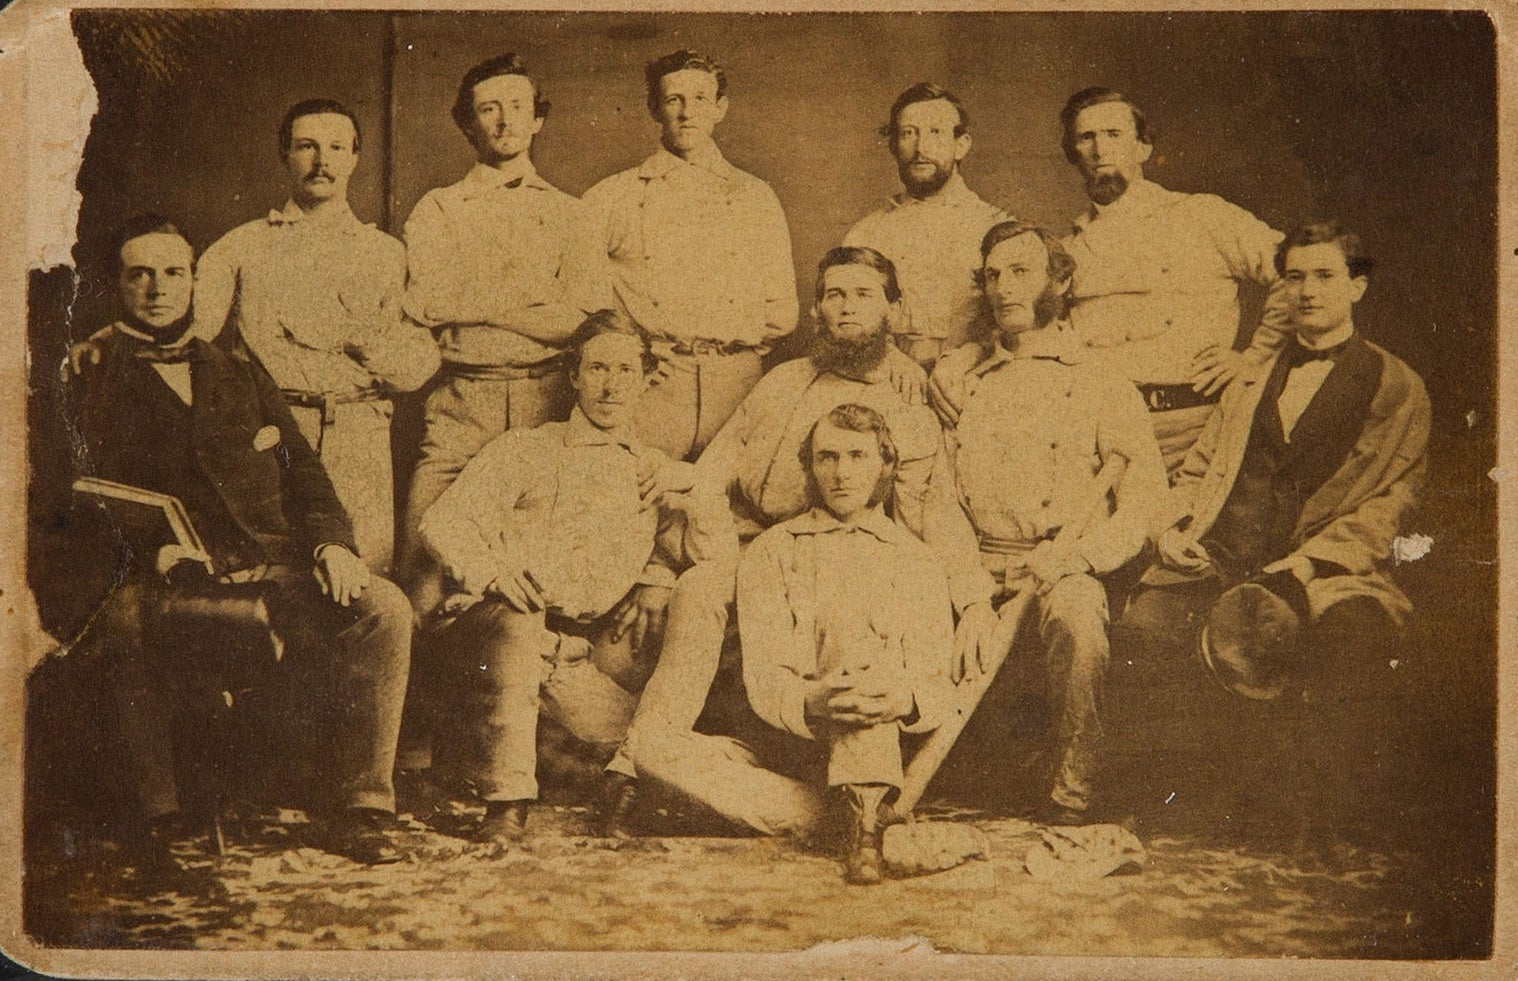 A Family Kept One Of The Oldest Baseball Cards For 155 Years Now